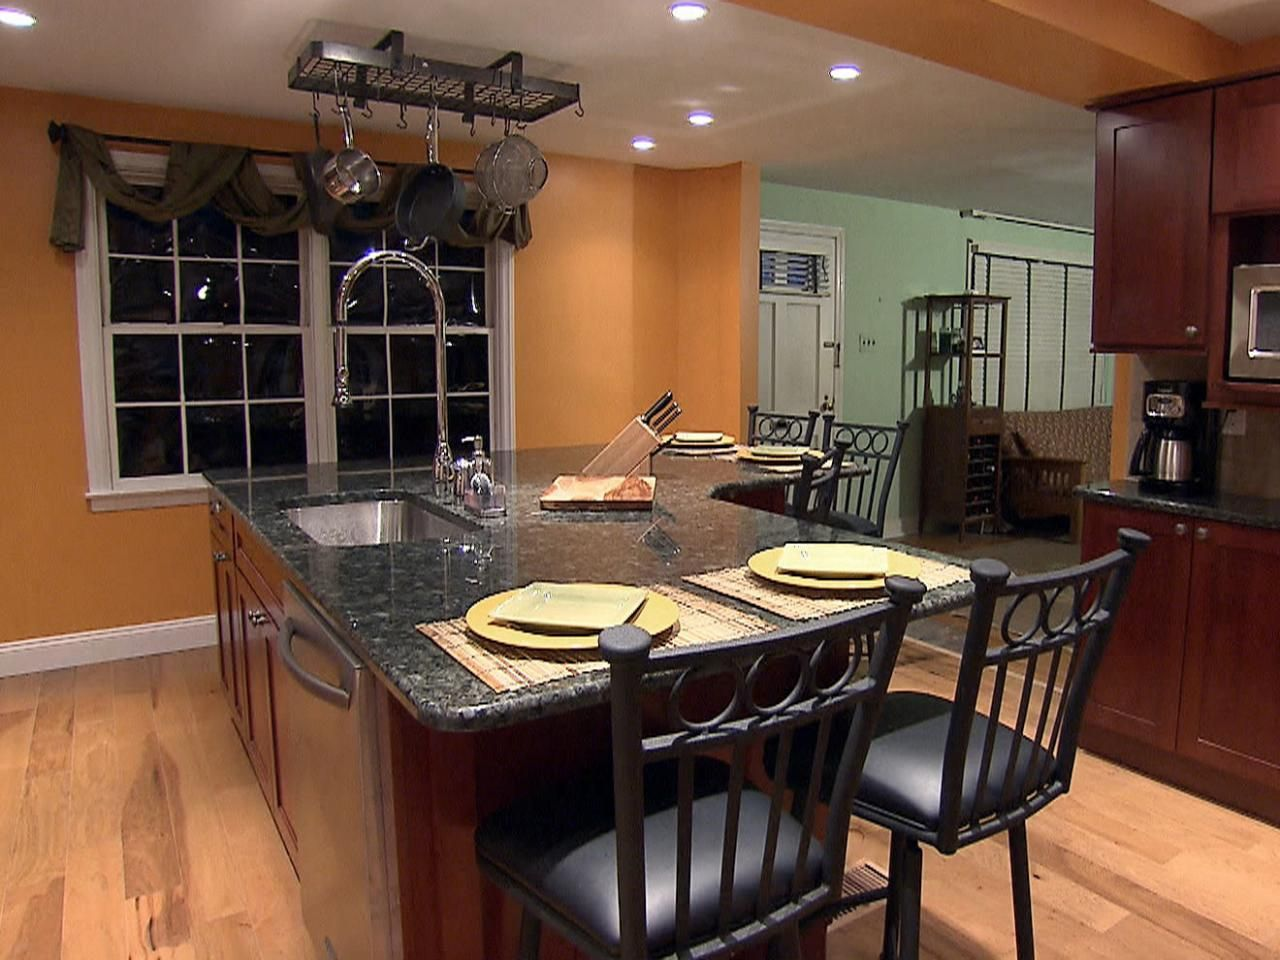 100 Kitchen Island With 4 Chairs Decor Ideas On A Budget Check More